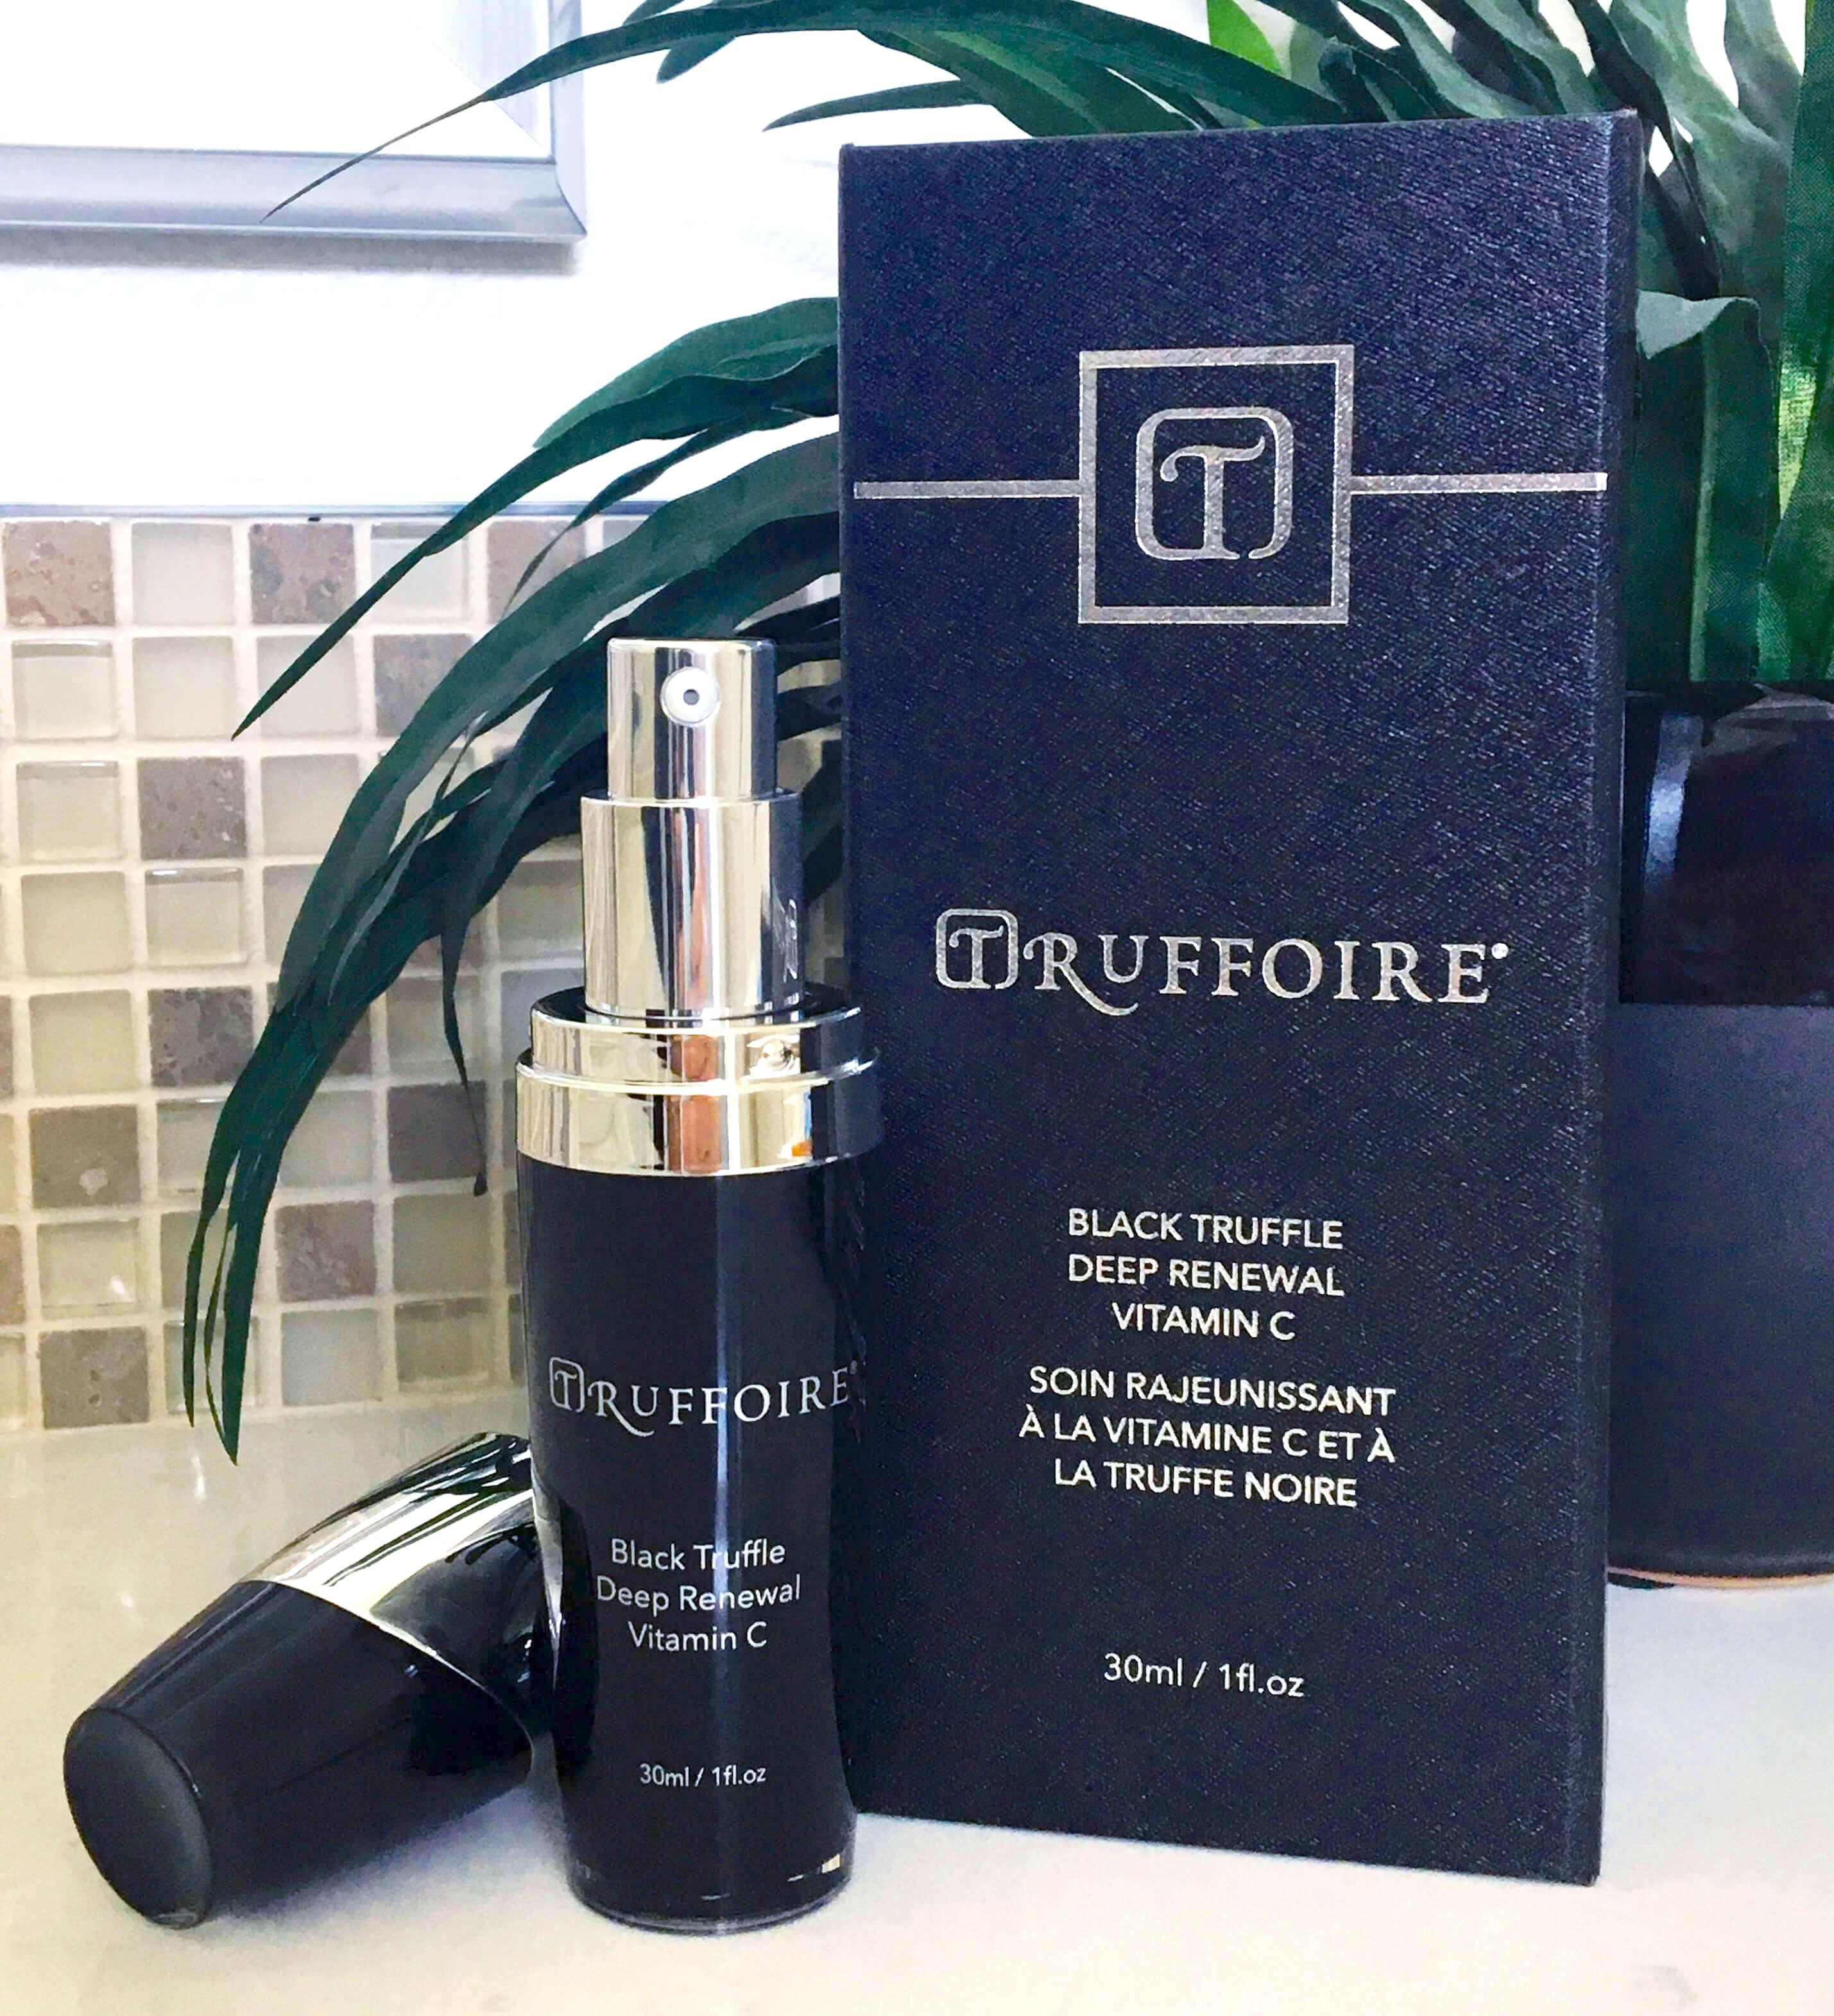 Truffoire Black Truffle Collection Review – Creative Fashion